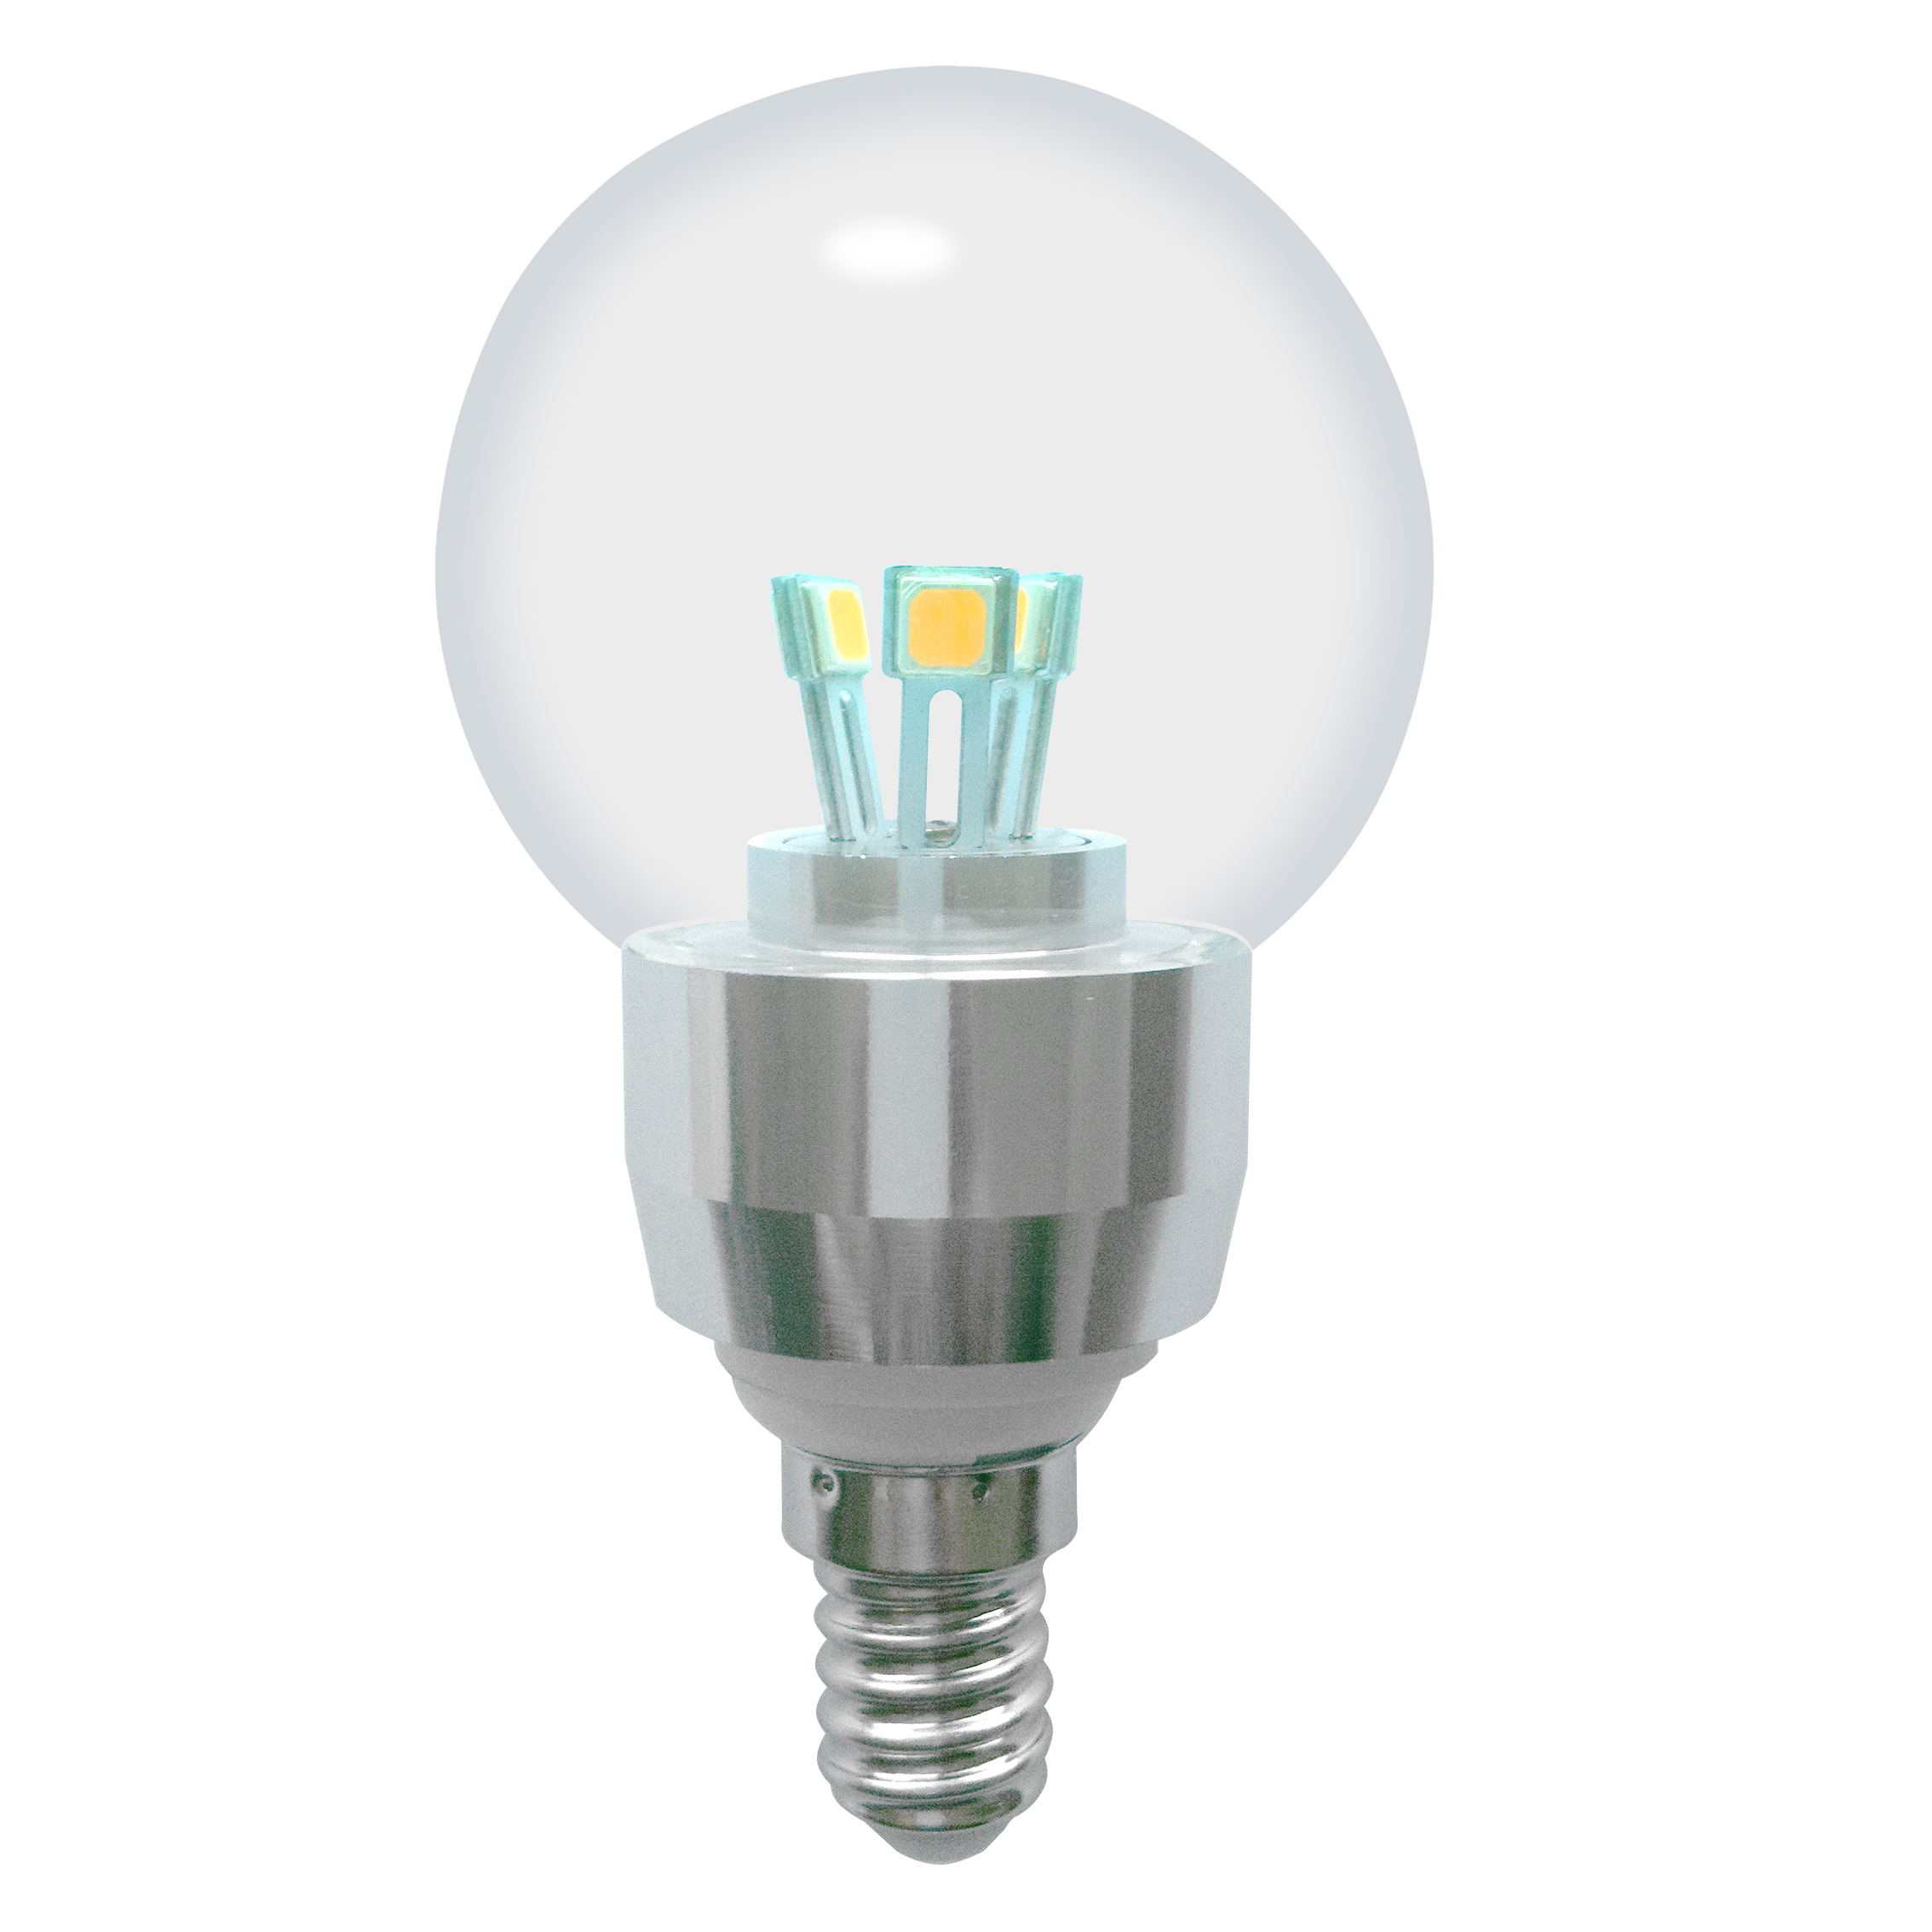 Led E14 10w Buy Dimmable Led Globe Bulb G50 4w E14 280lm 85 265v E12